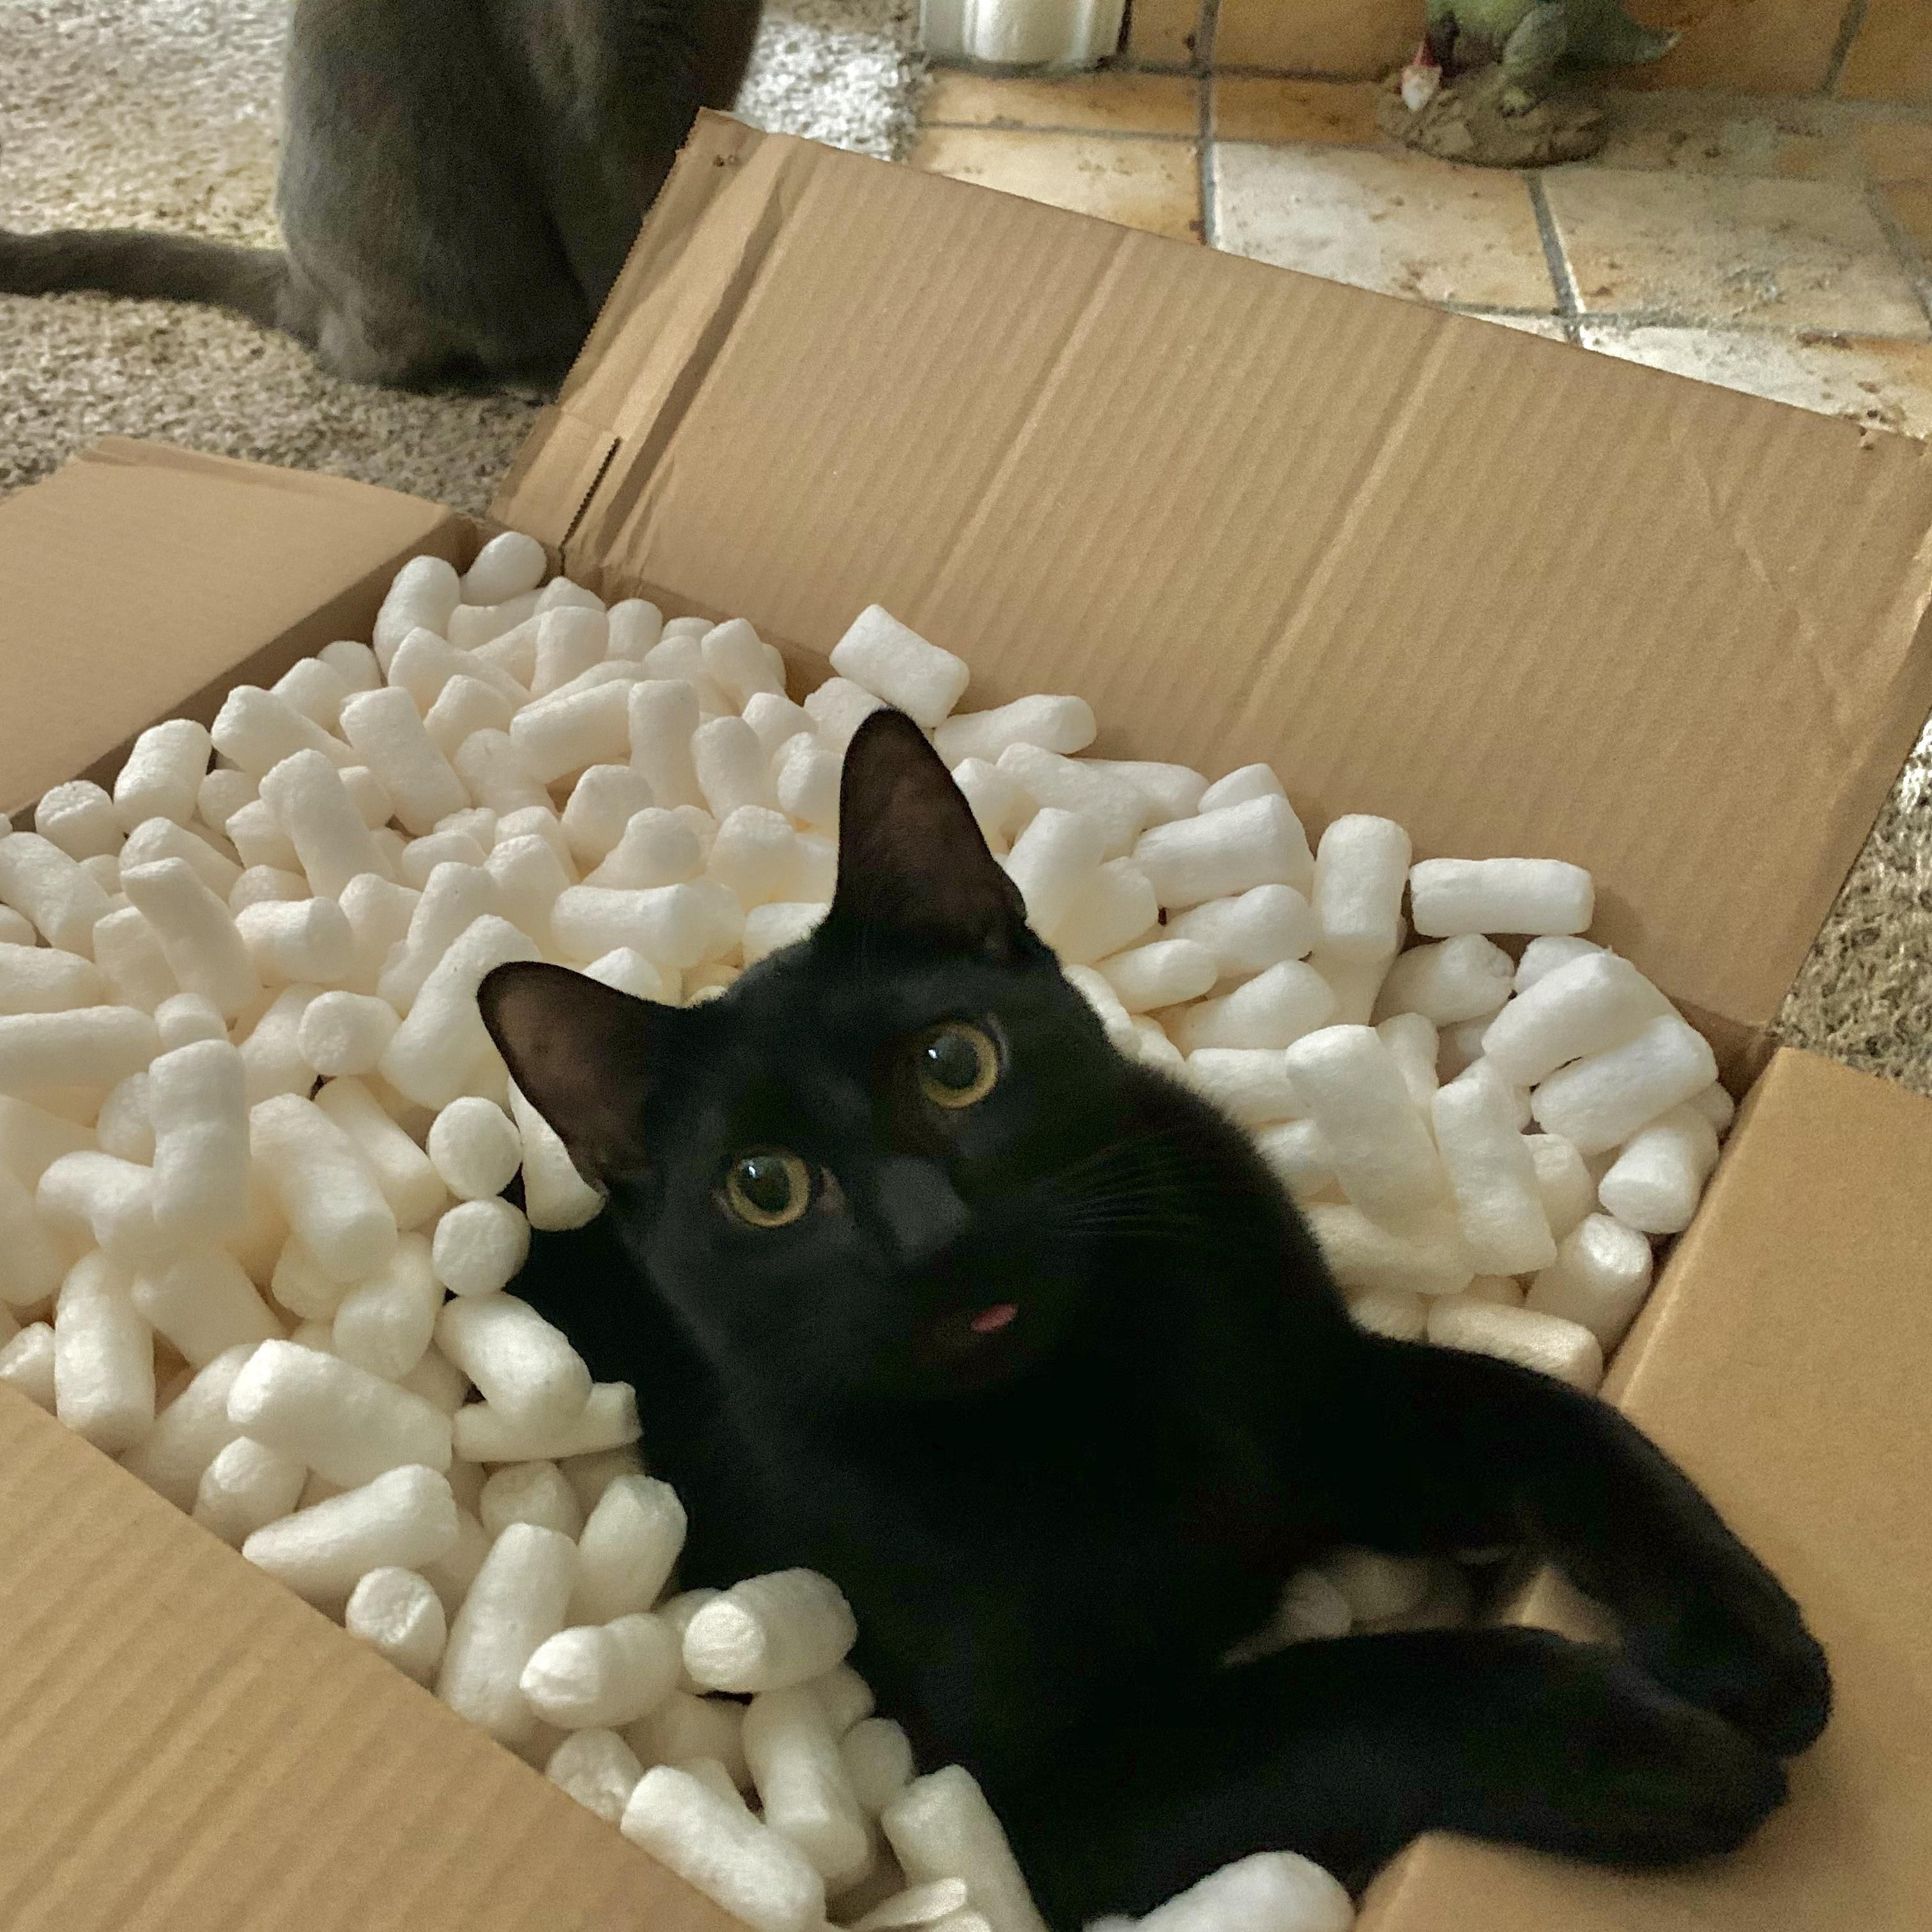 Black Cat Delivery Free Blep Included Teelast Com In 2020 Cats Black Cat Kittens And Puppies